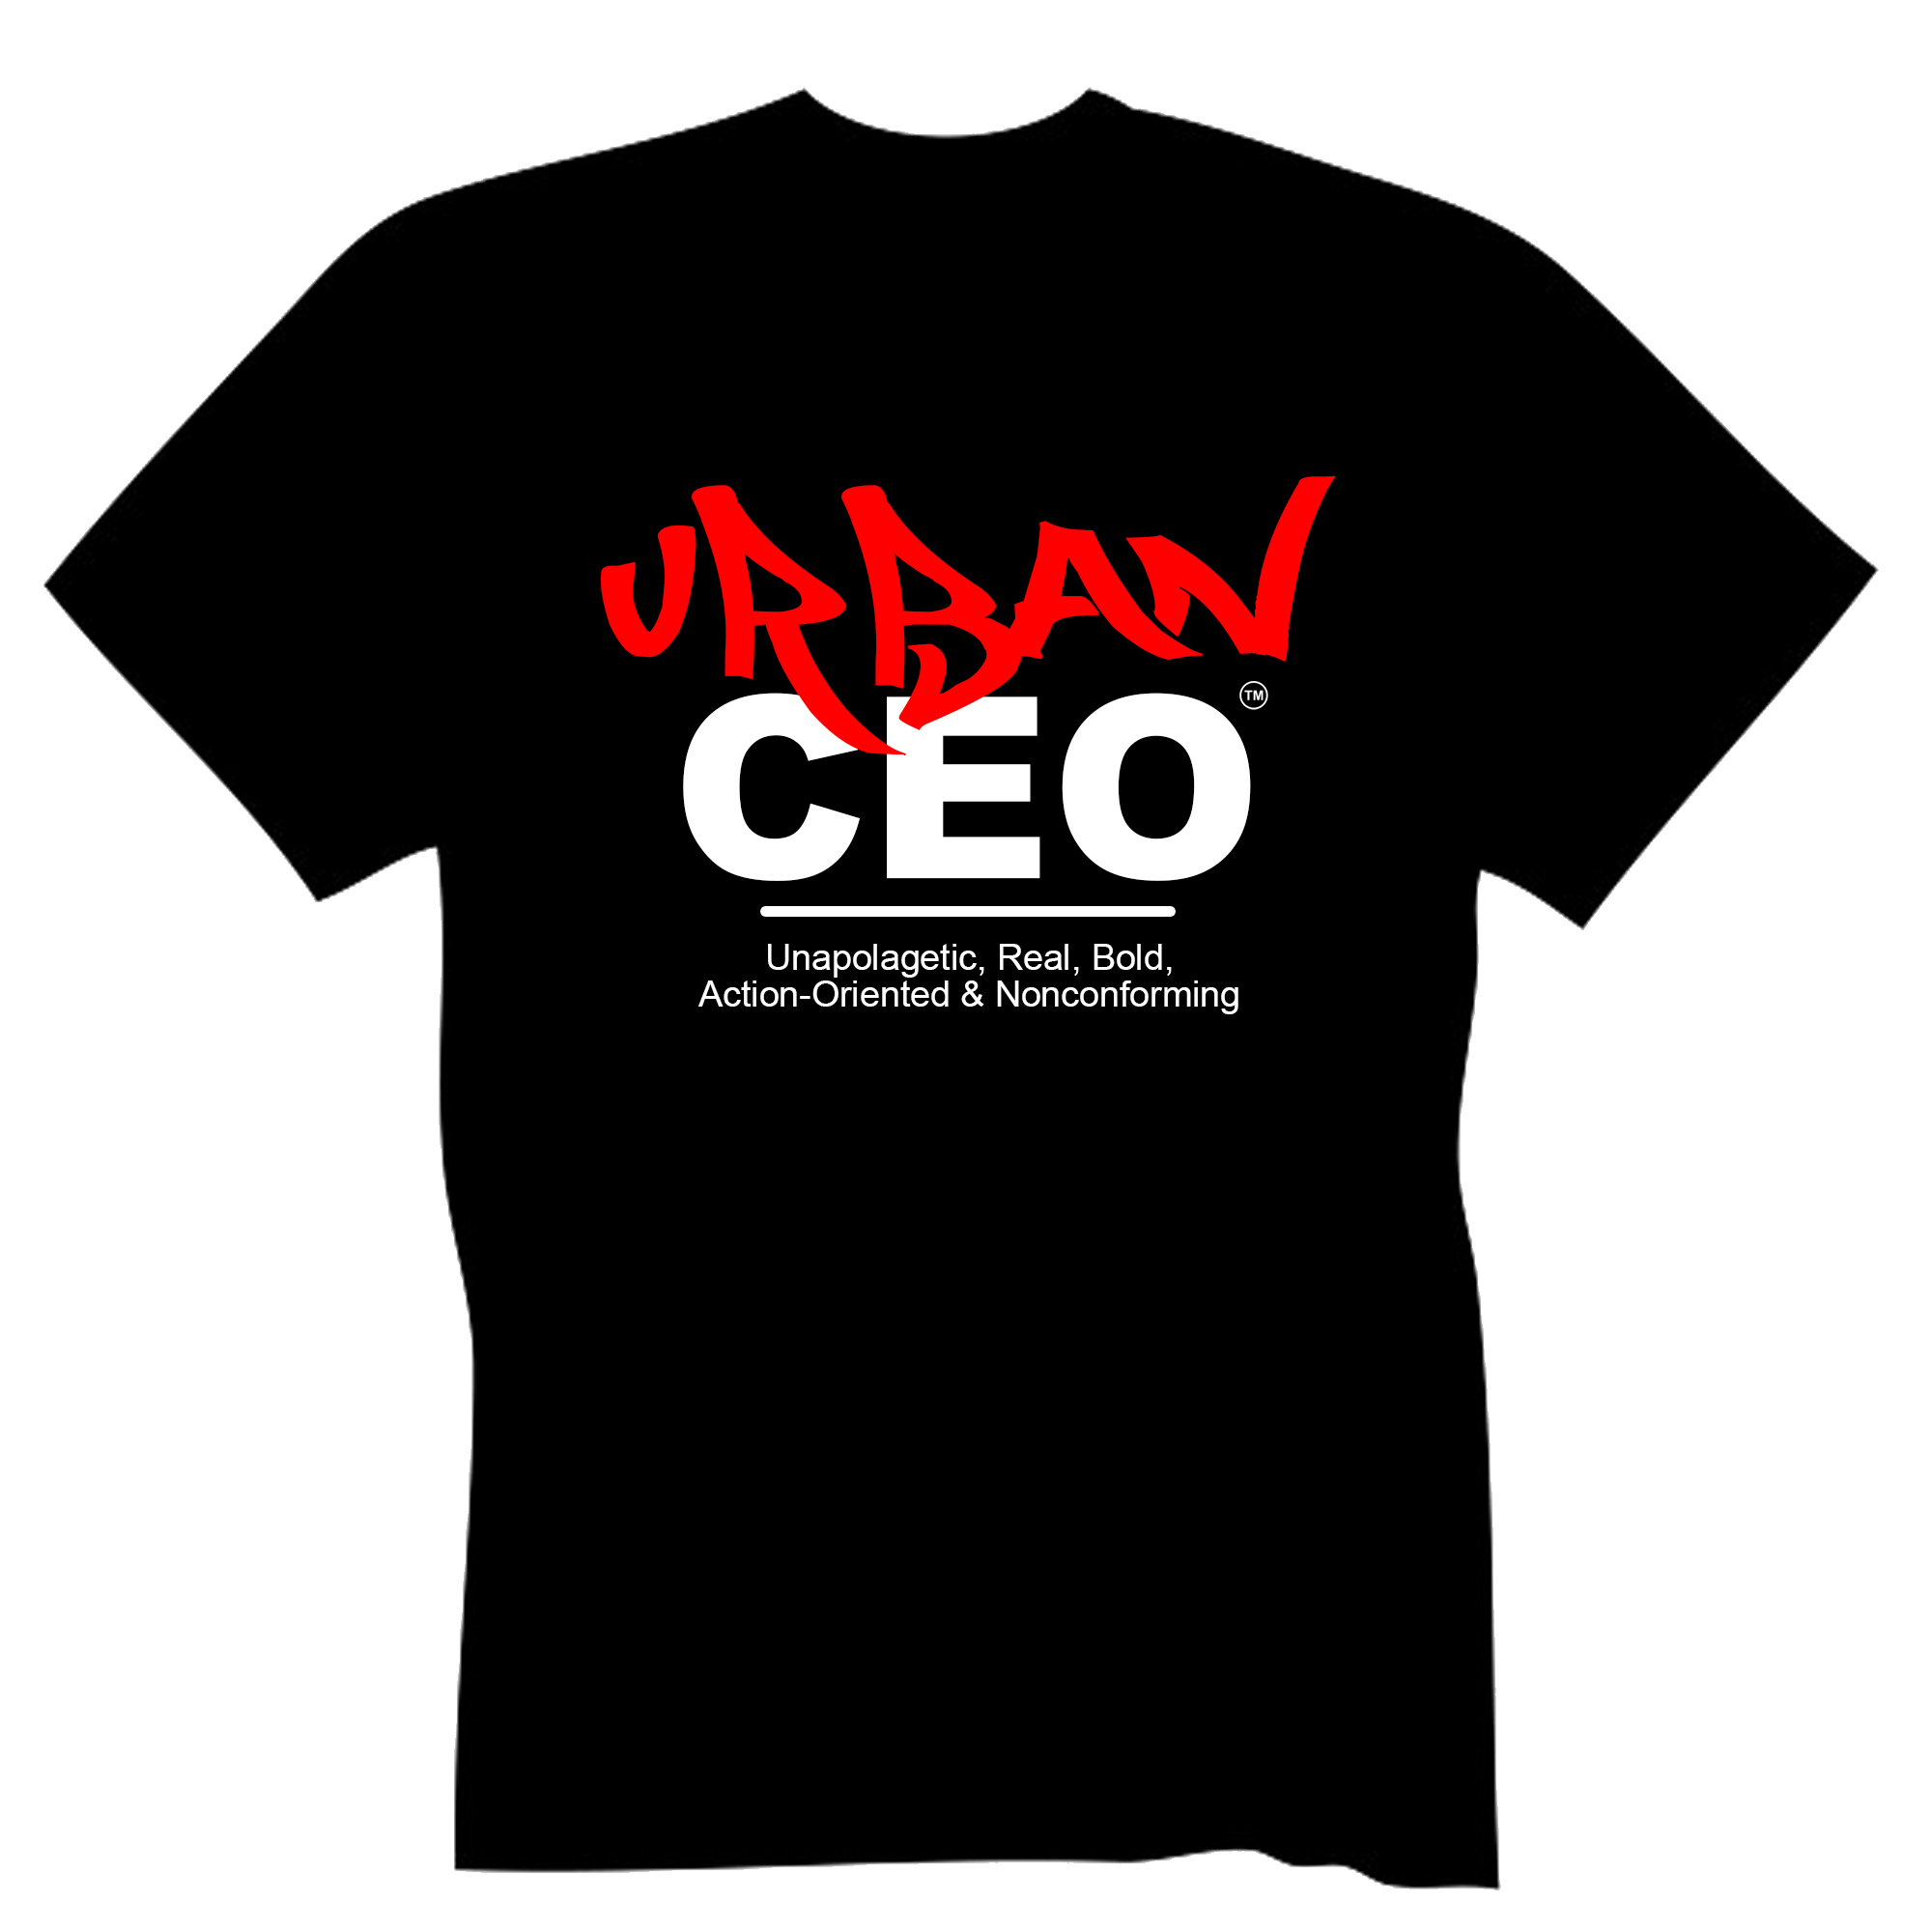 URBAN CEO Tshirts 00005